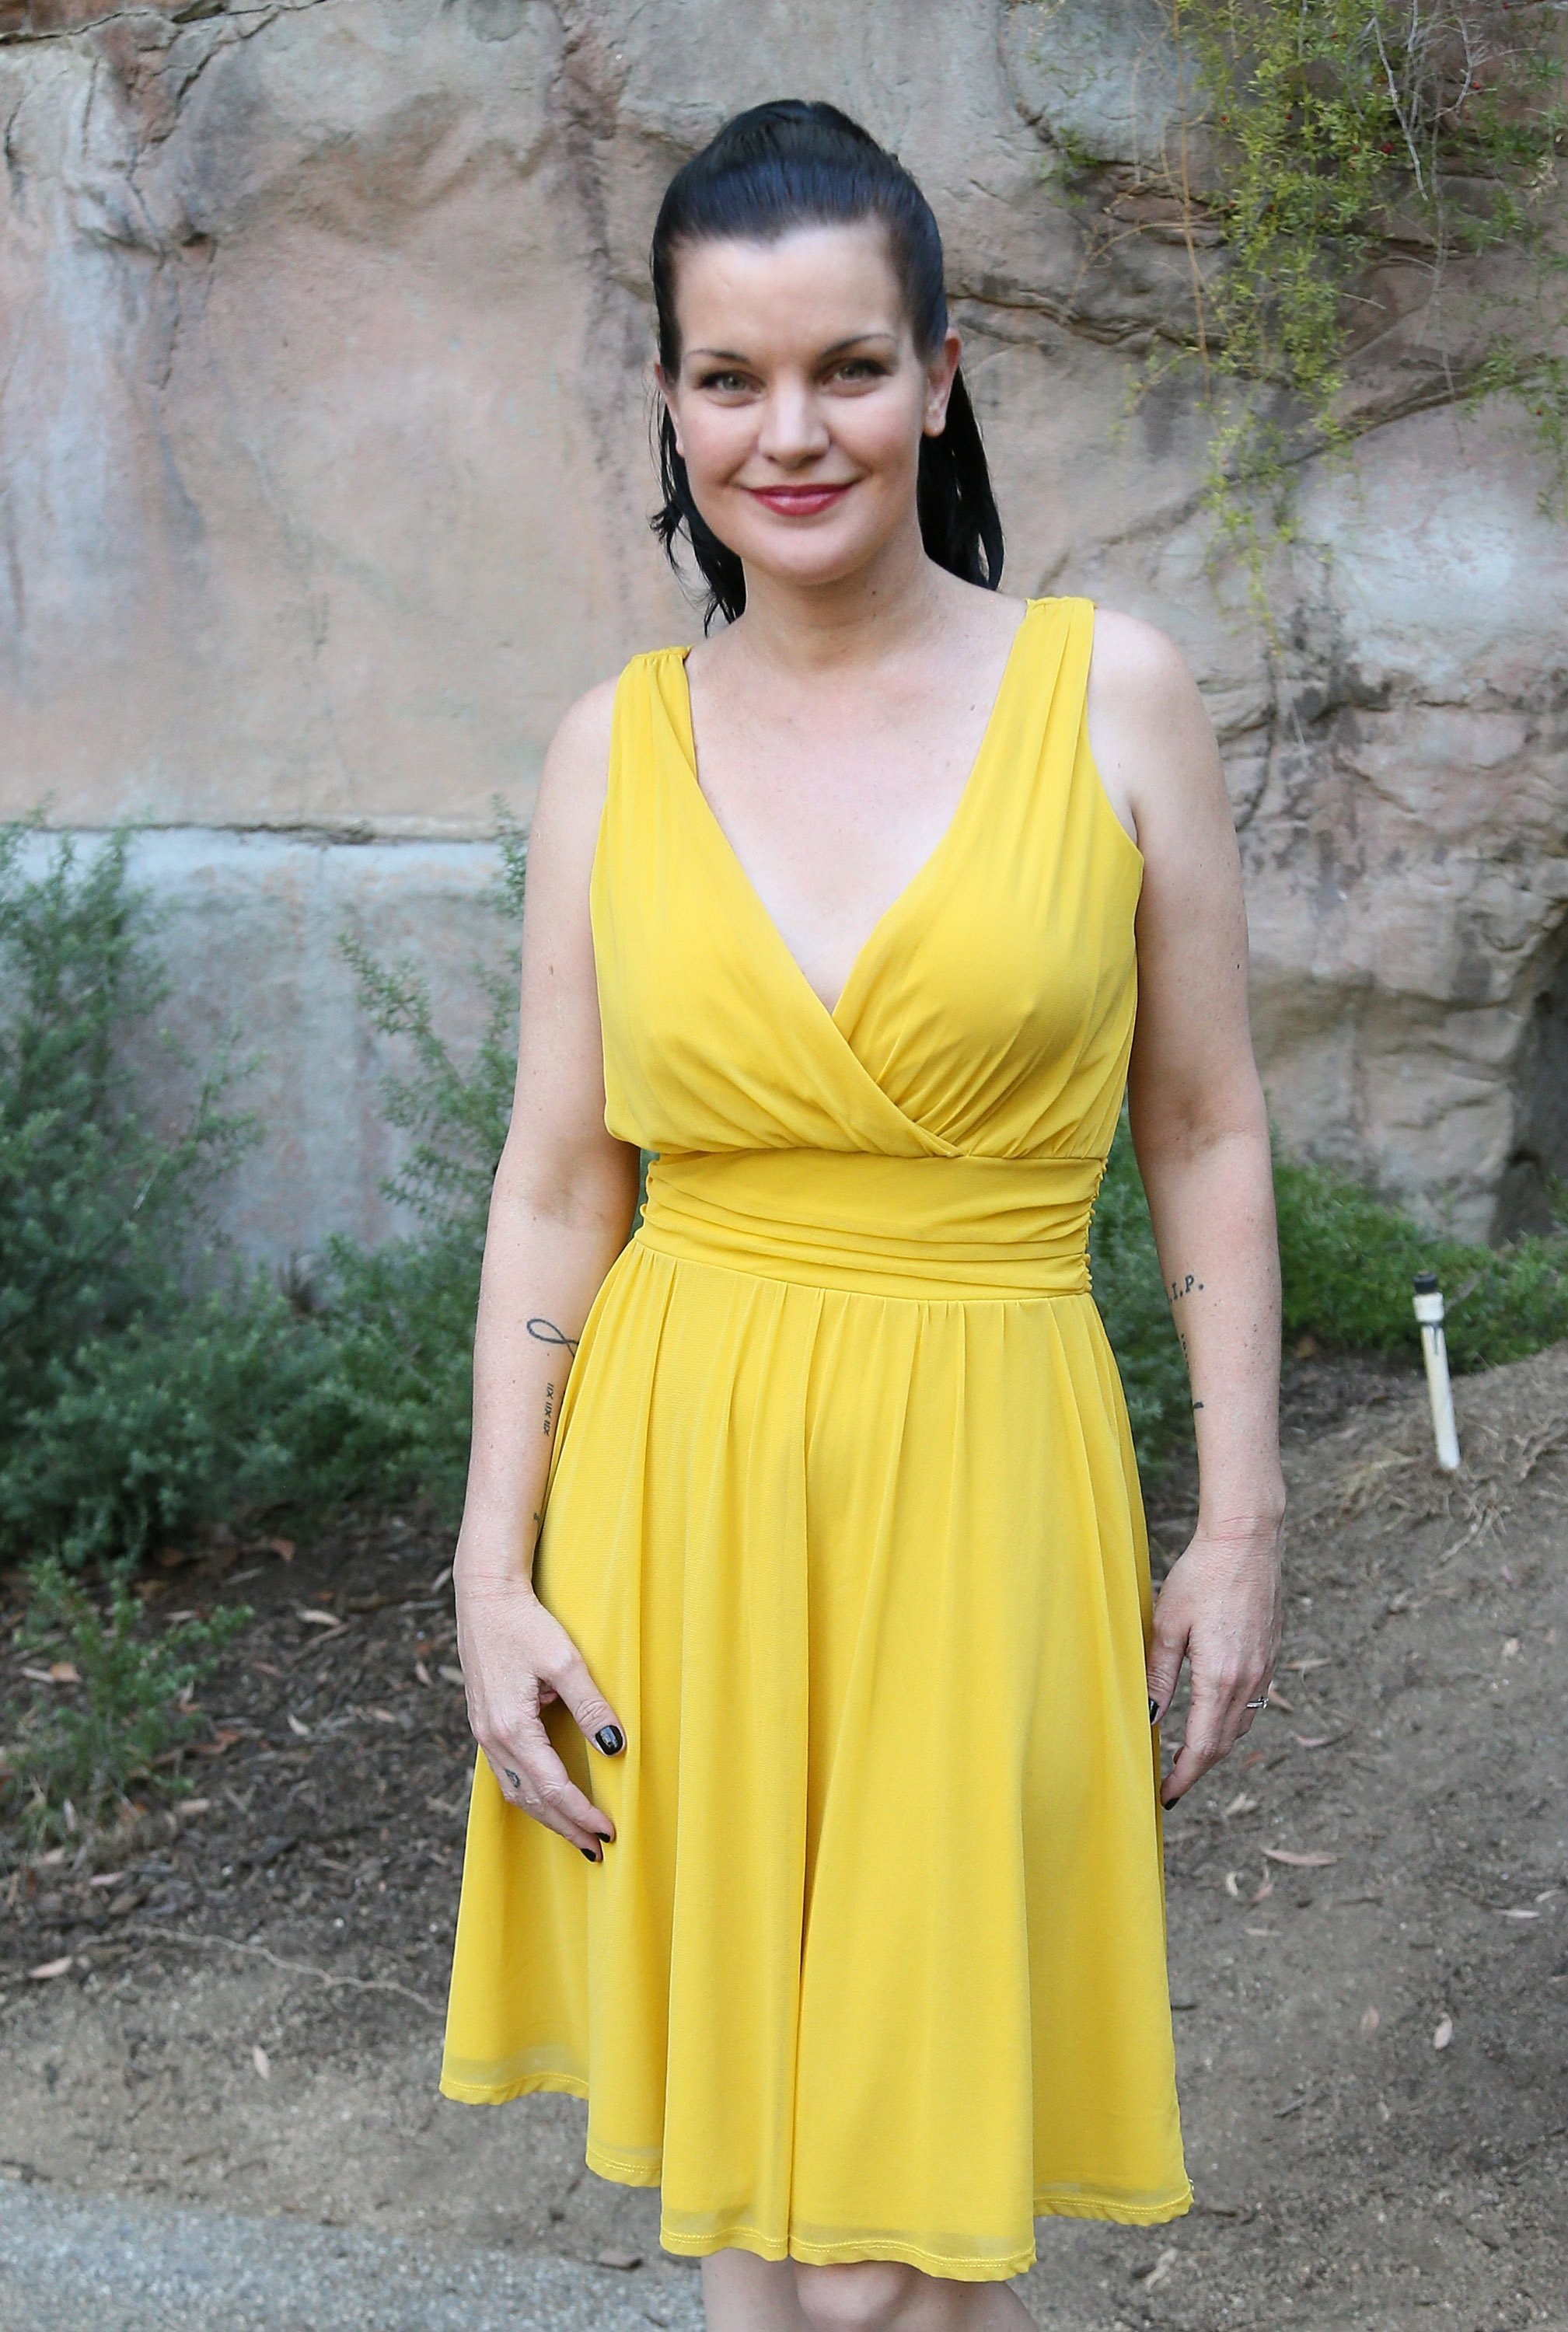 Pauley Perrette attends the Greater Los Angeles Zoo Association's (GLAZA) 45th Annual Beastly Ball at the Los Angeles Zoo on June 20, 2015 | Photo: GettyImages